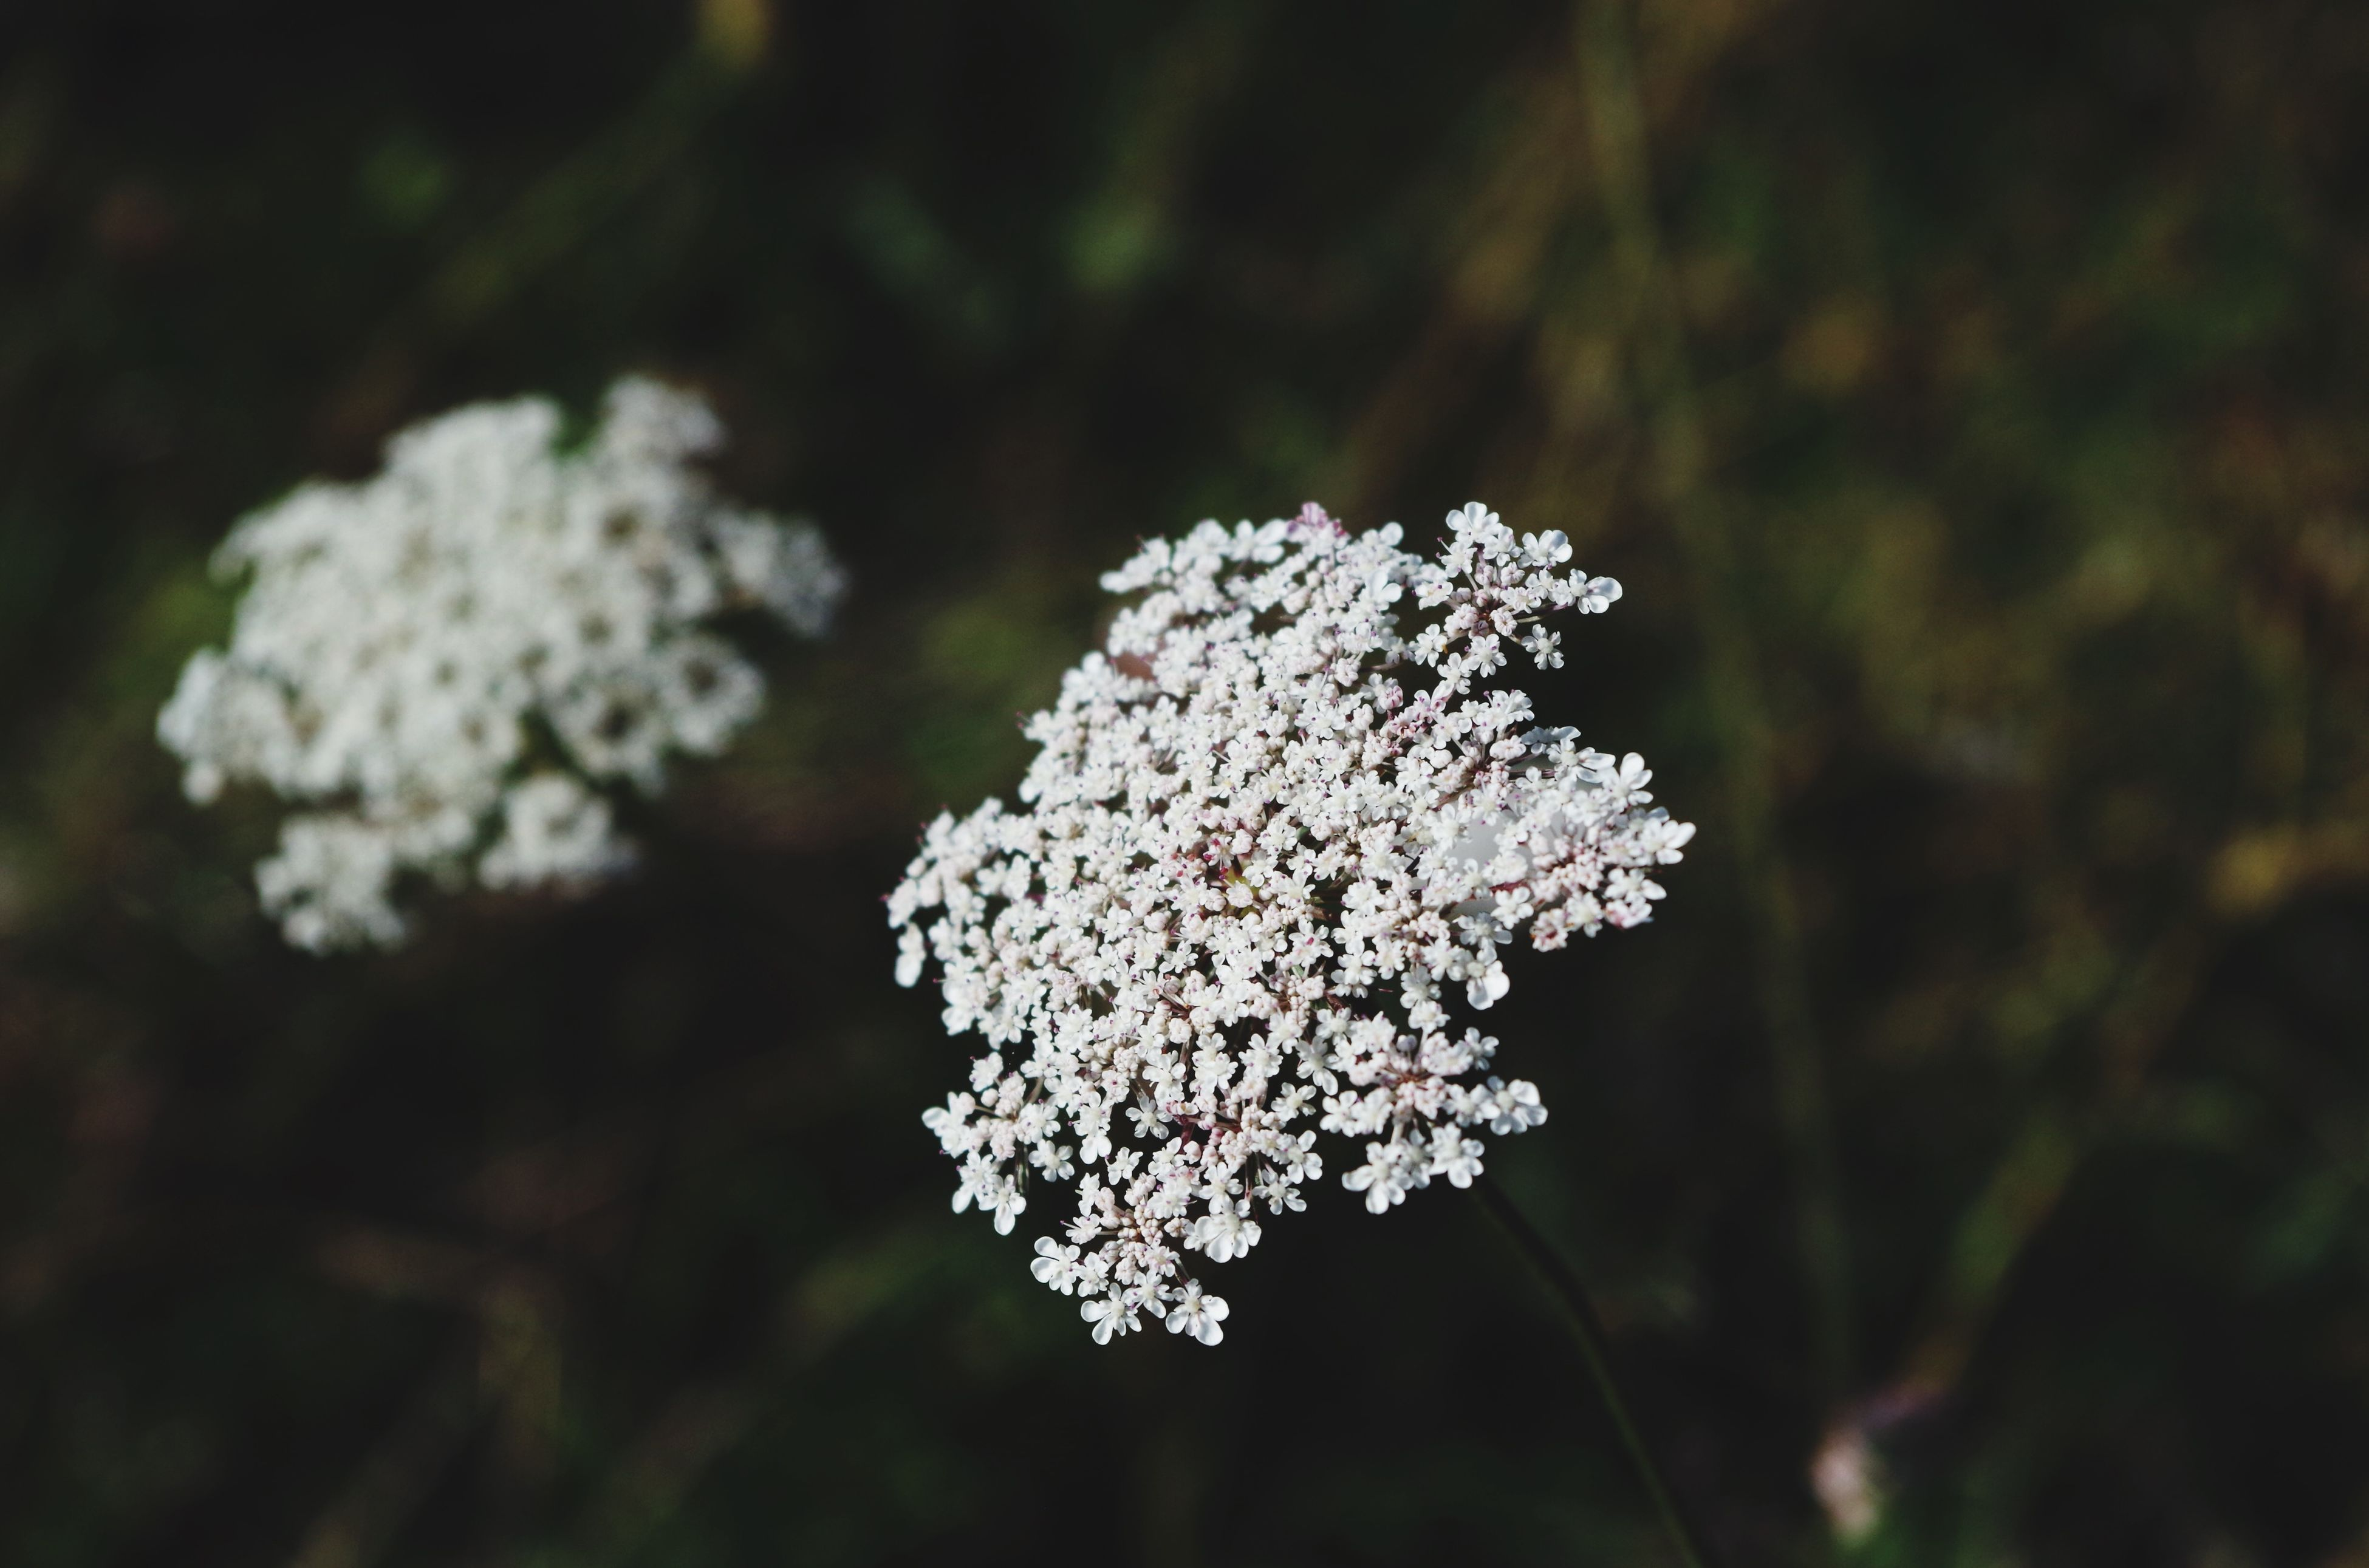 flower, fragility, freshness, white color, growth, focus on foreground, beauty in nature, petal, nature, close-up, flower head, blooming, blossom, in bloom, season, plant, selective focus, springtime, outdoors, white